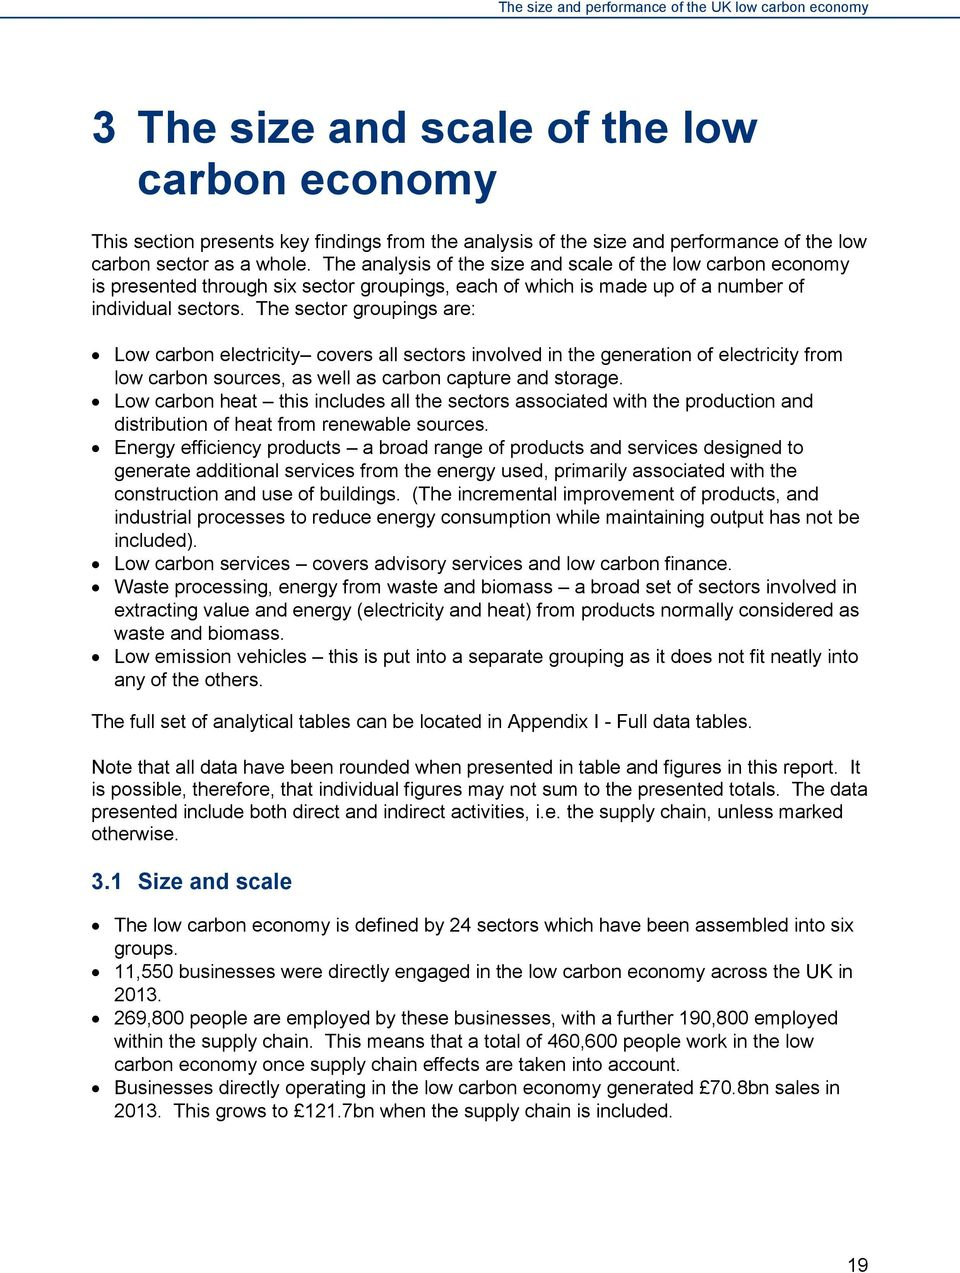 The sector groupings are: Low carbon electricity covers all sectors involved in the generation of electricity from low carbon sources, as well as carbon capture and storage.